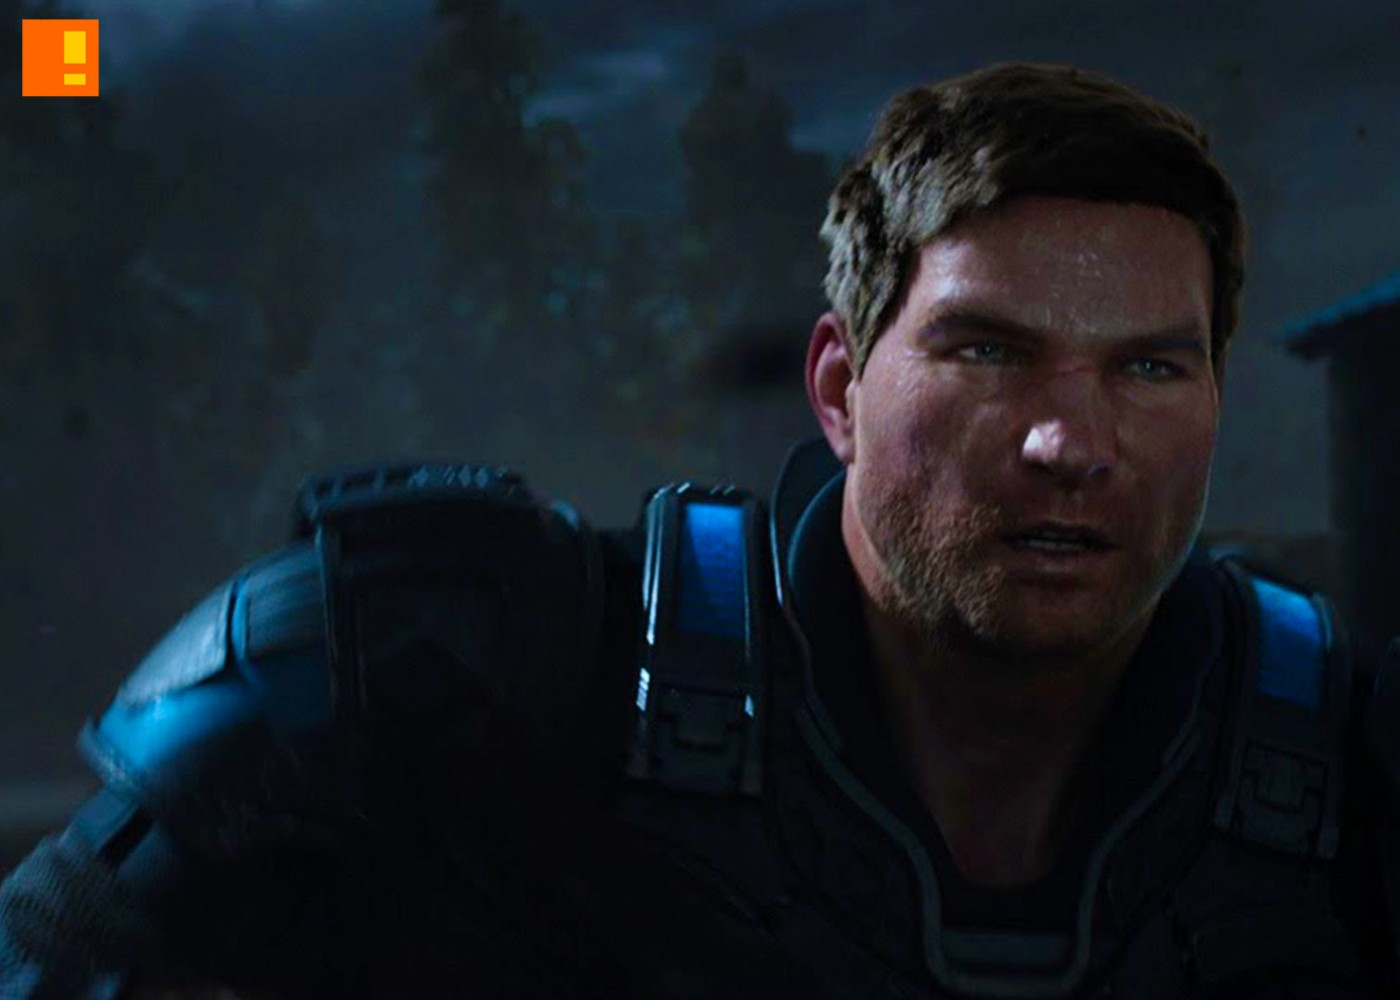 gears of war 4, tomorrow, the action pixel, @theactionpixel, xbox, coalition, gears, the action pixel